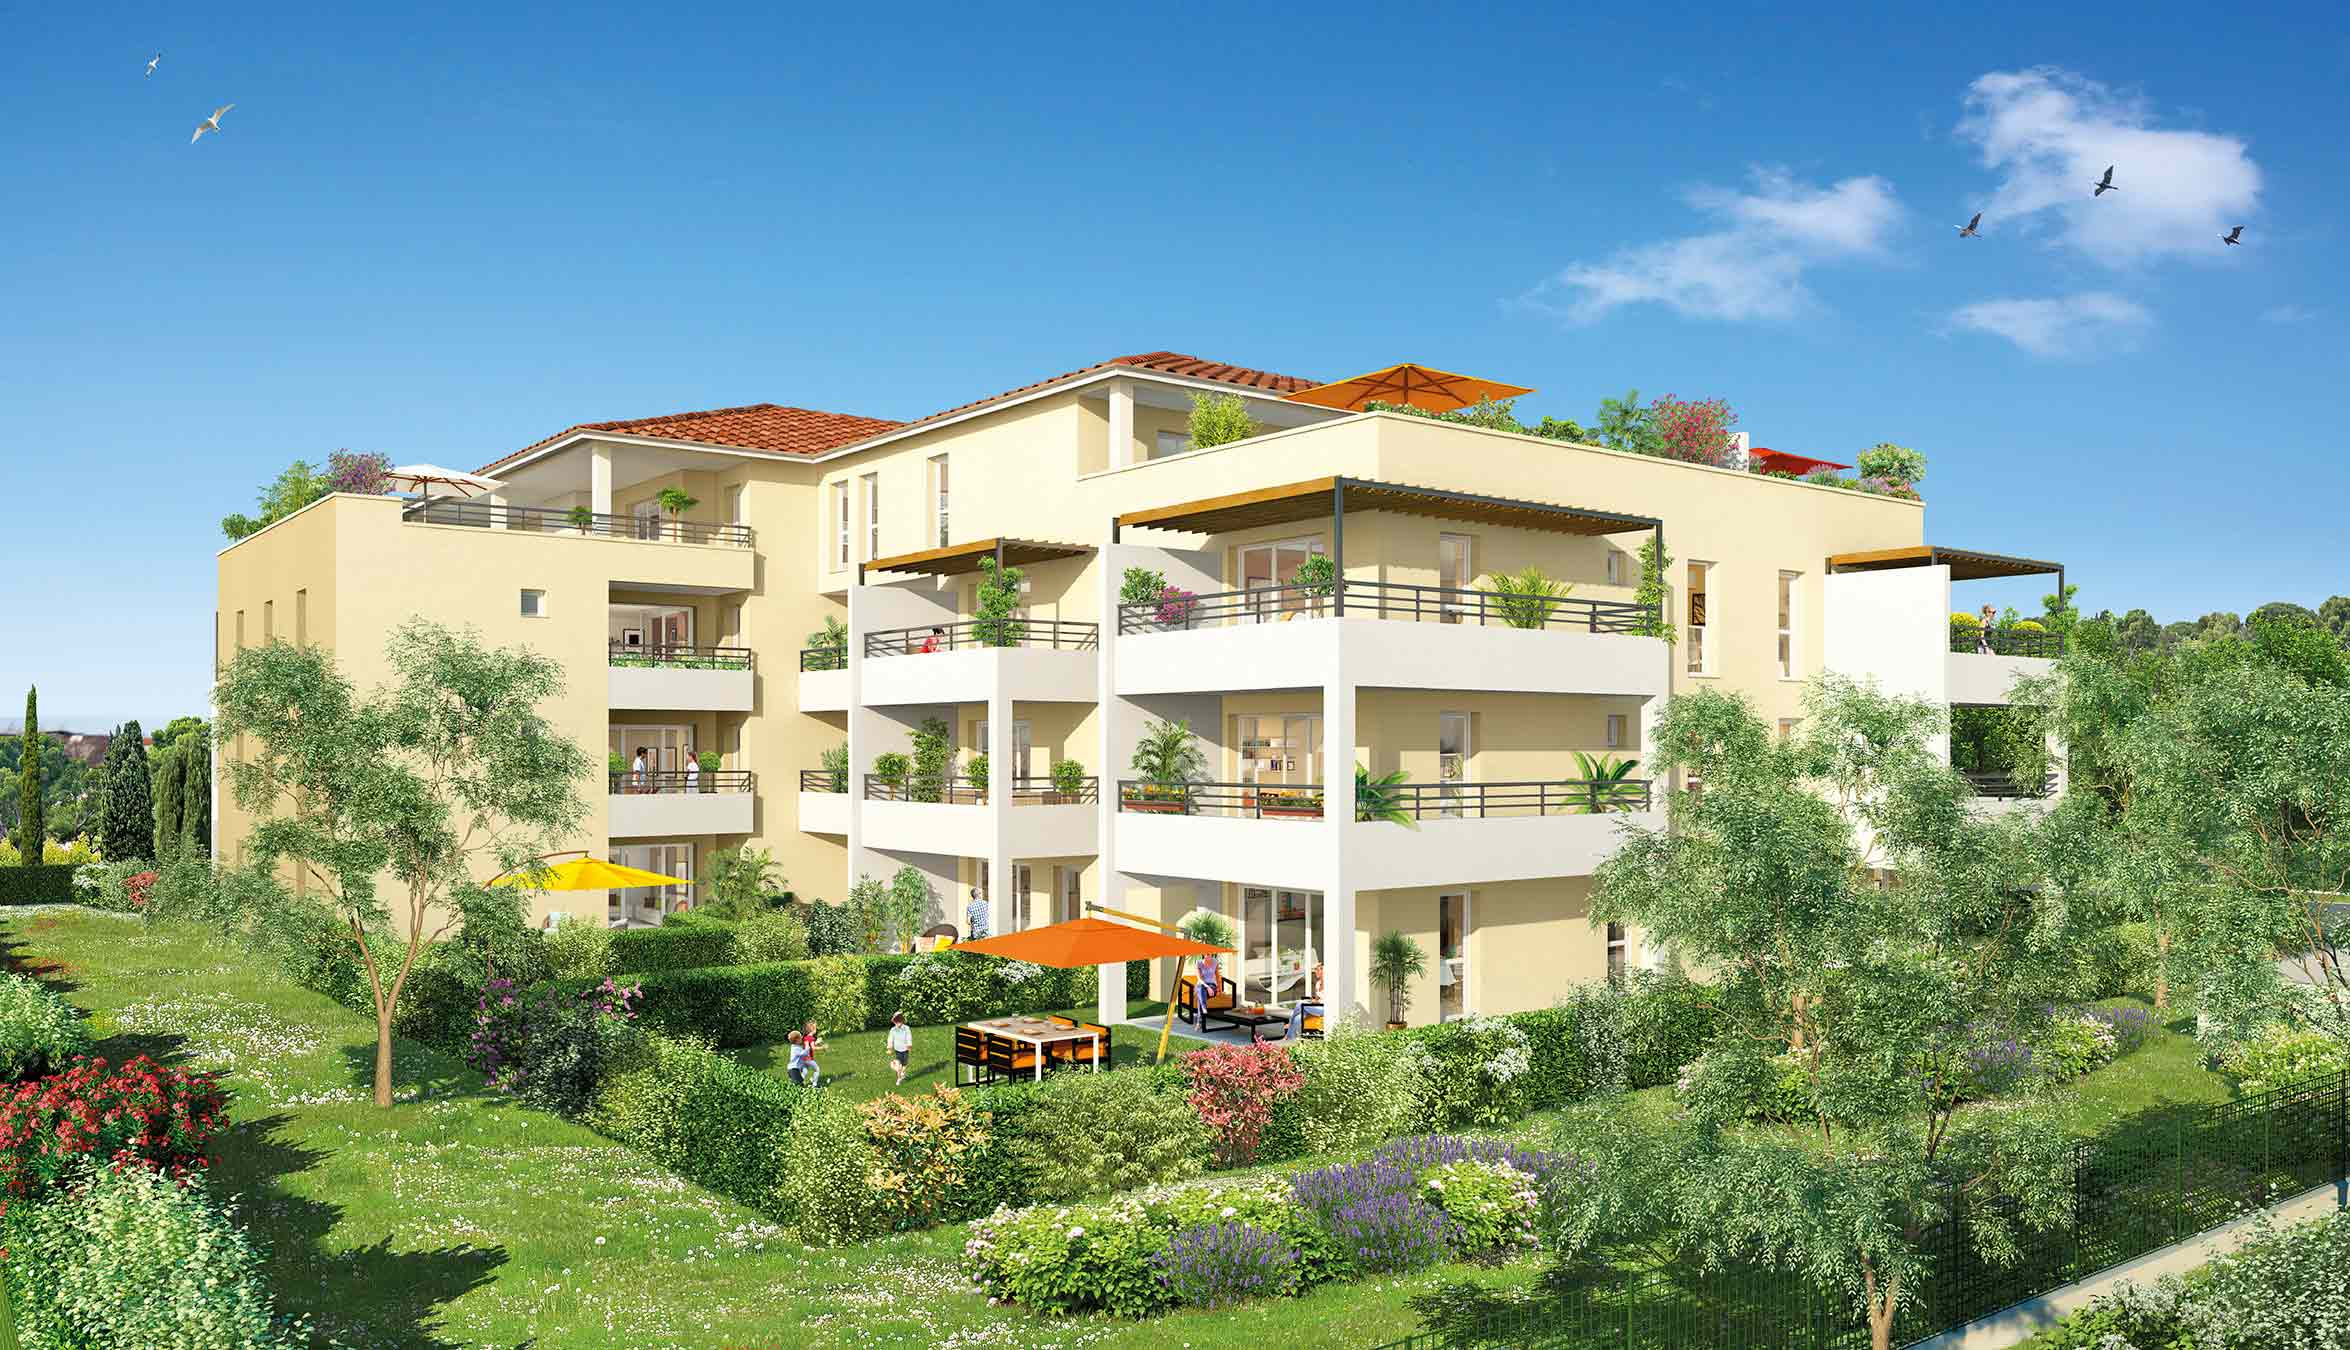 Programme immobilier neuf montpellier les bonnes astuces for Programme immobilier